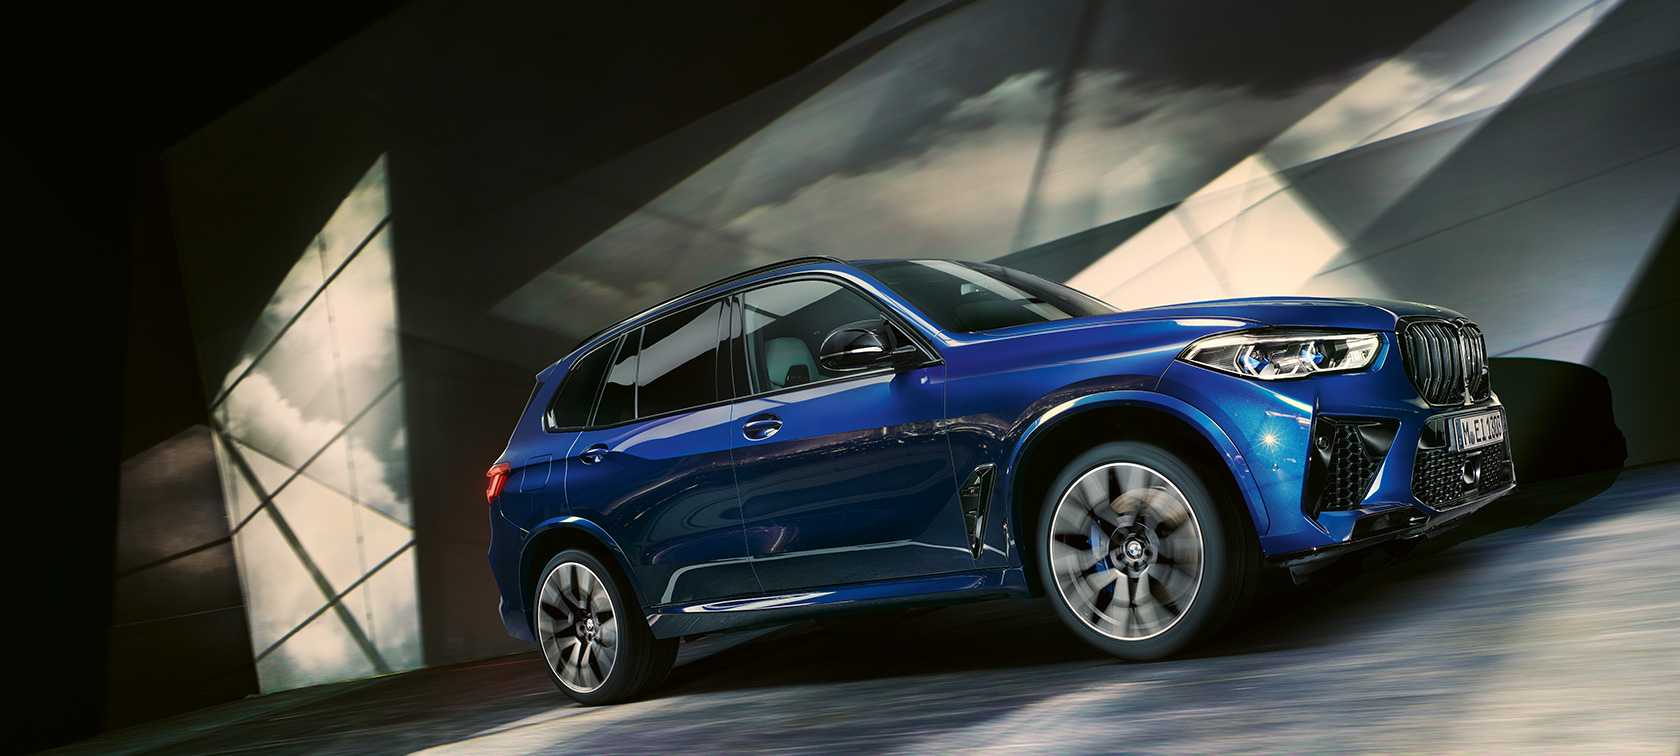 The all-new BMW X5 M Automobiles F95 2020